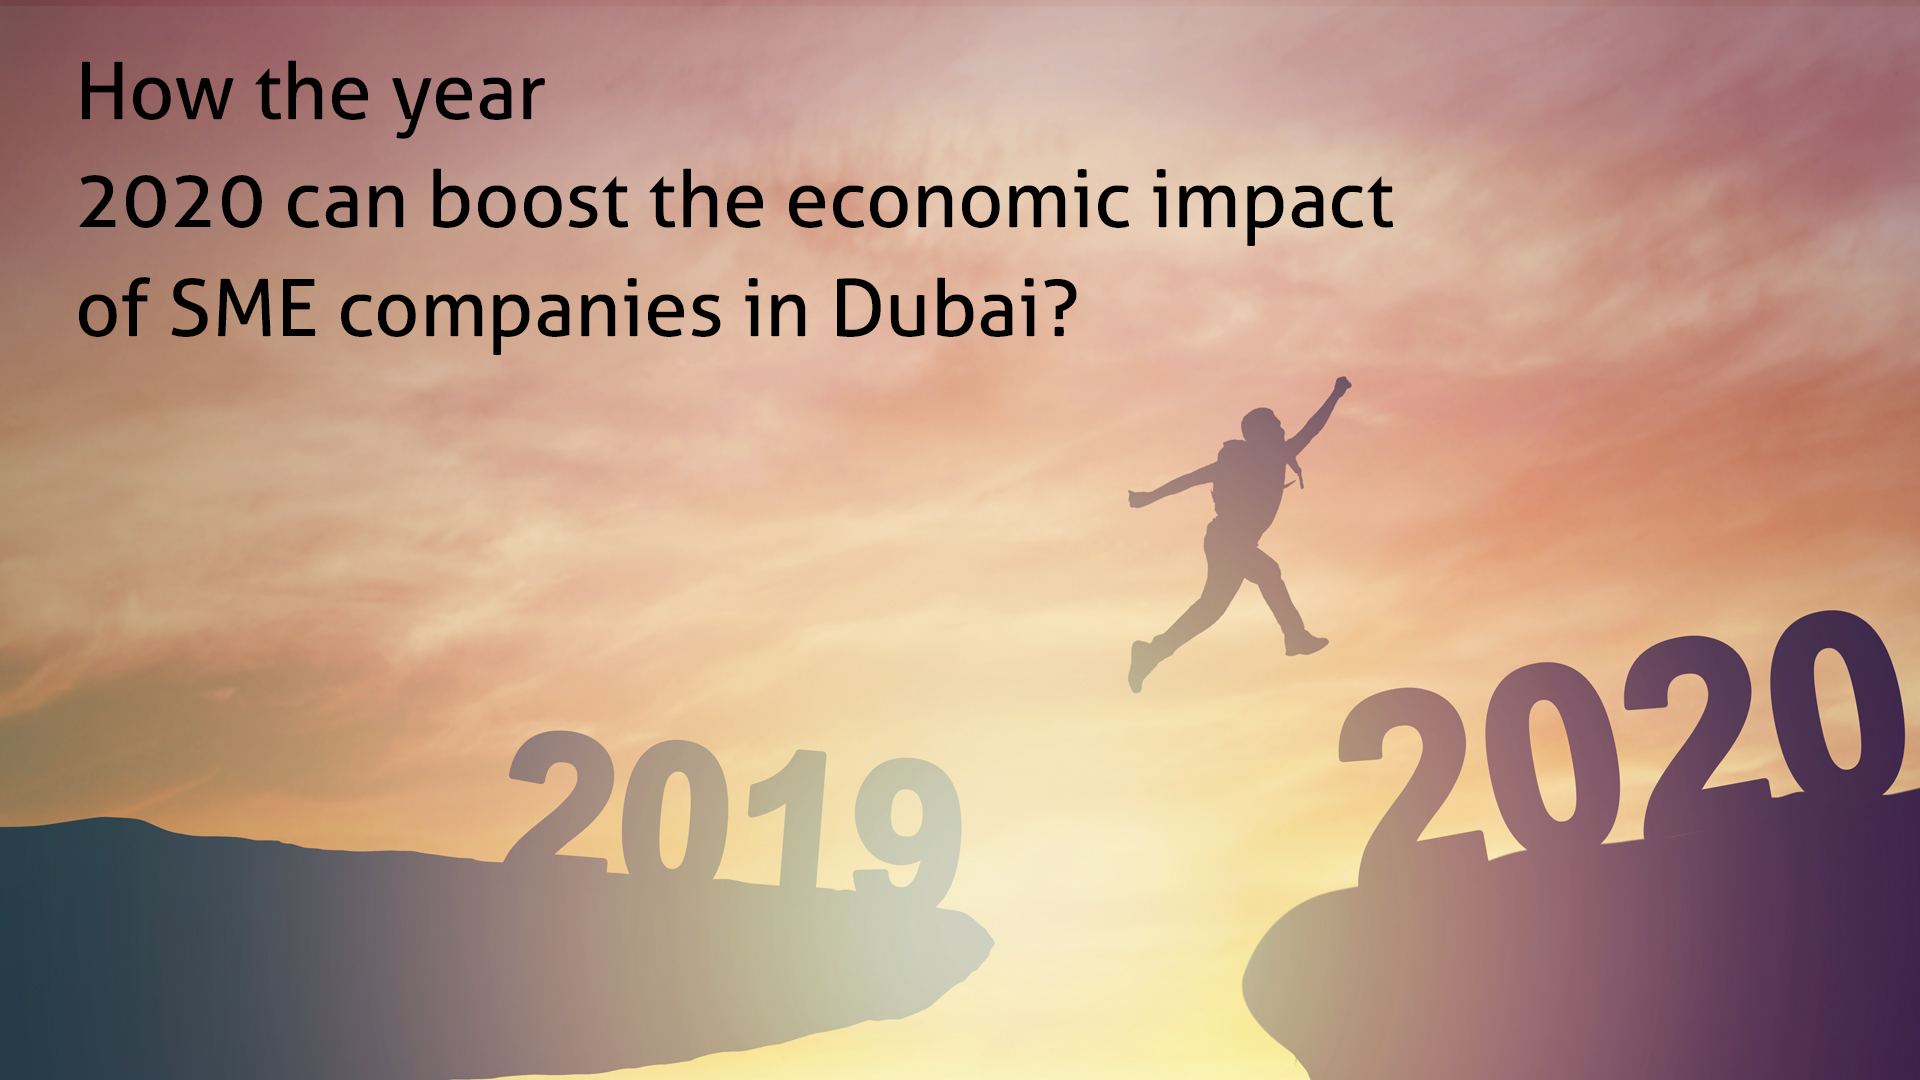 How the year 2020 can boost the economic impact of SME companies in Dubai?